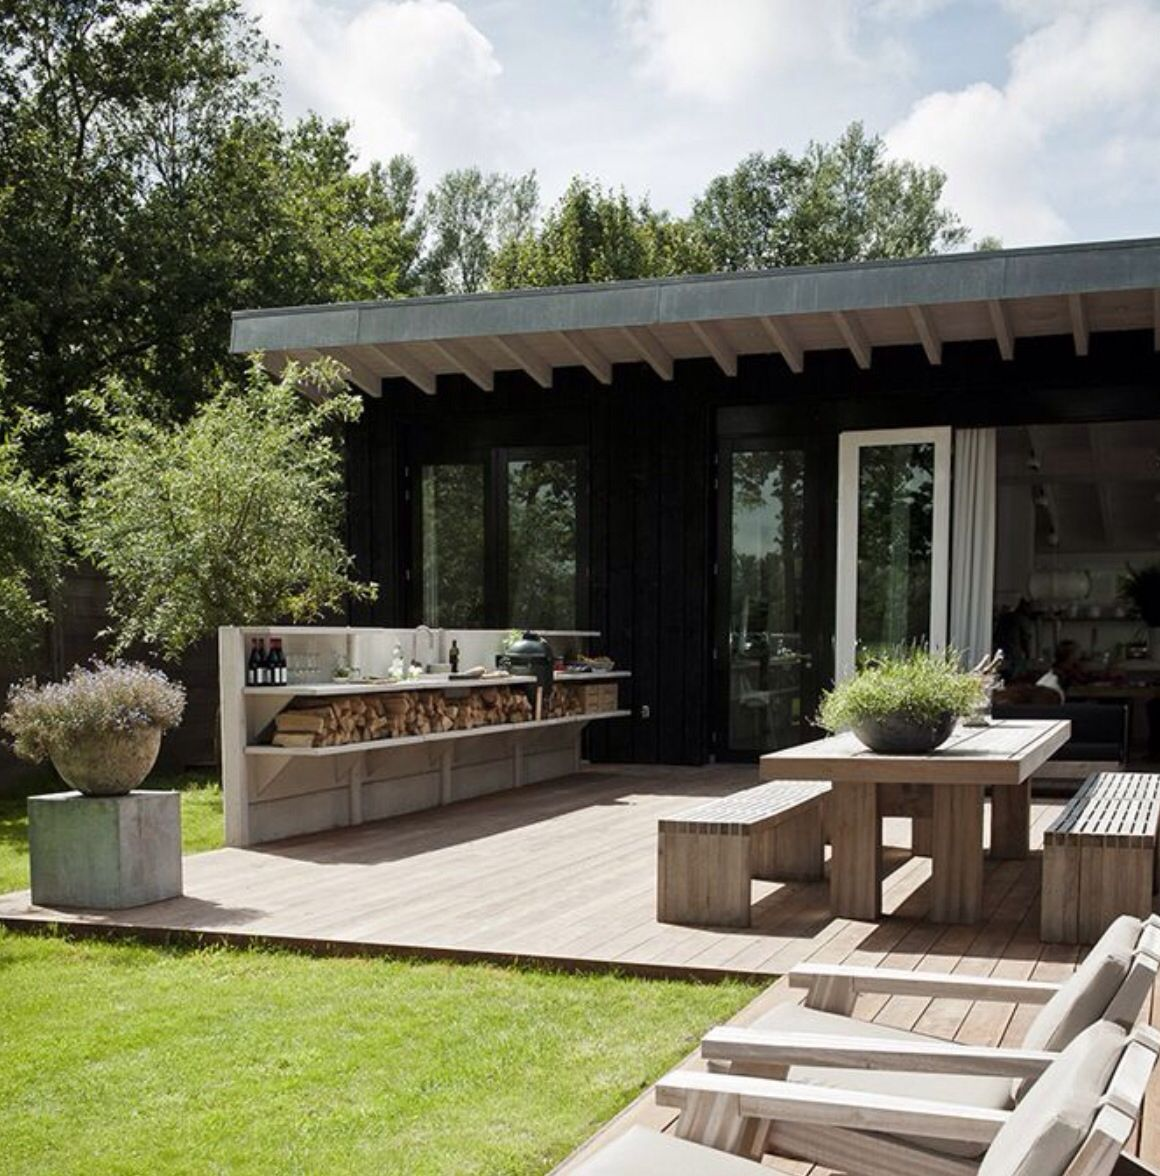 Amenagement Terrasse Fauteuil Bbq Area Projects To Try Pinterest Jardins Mobilier